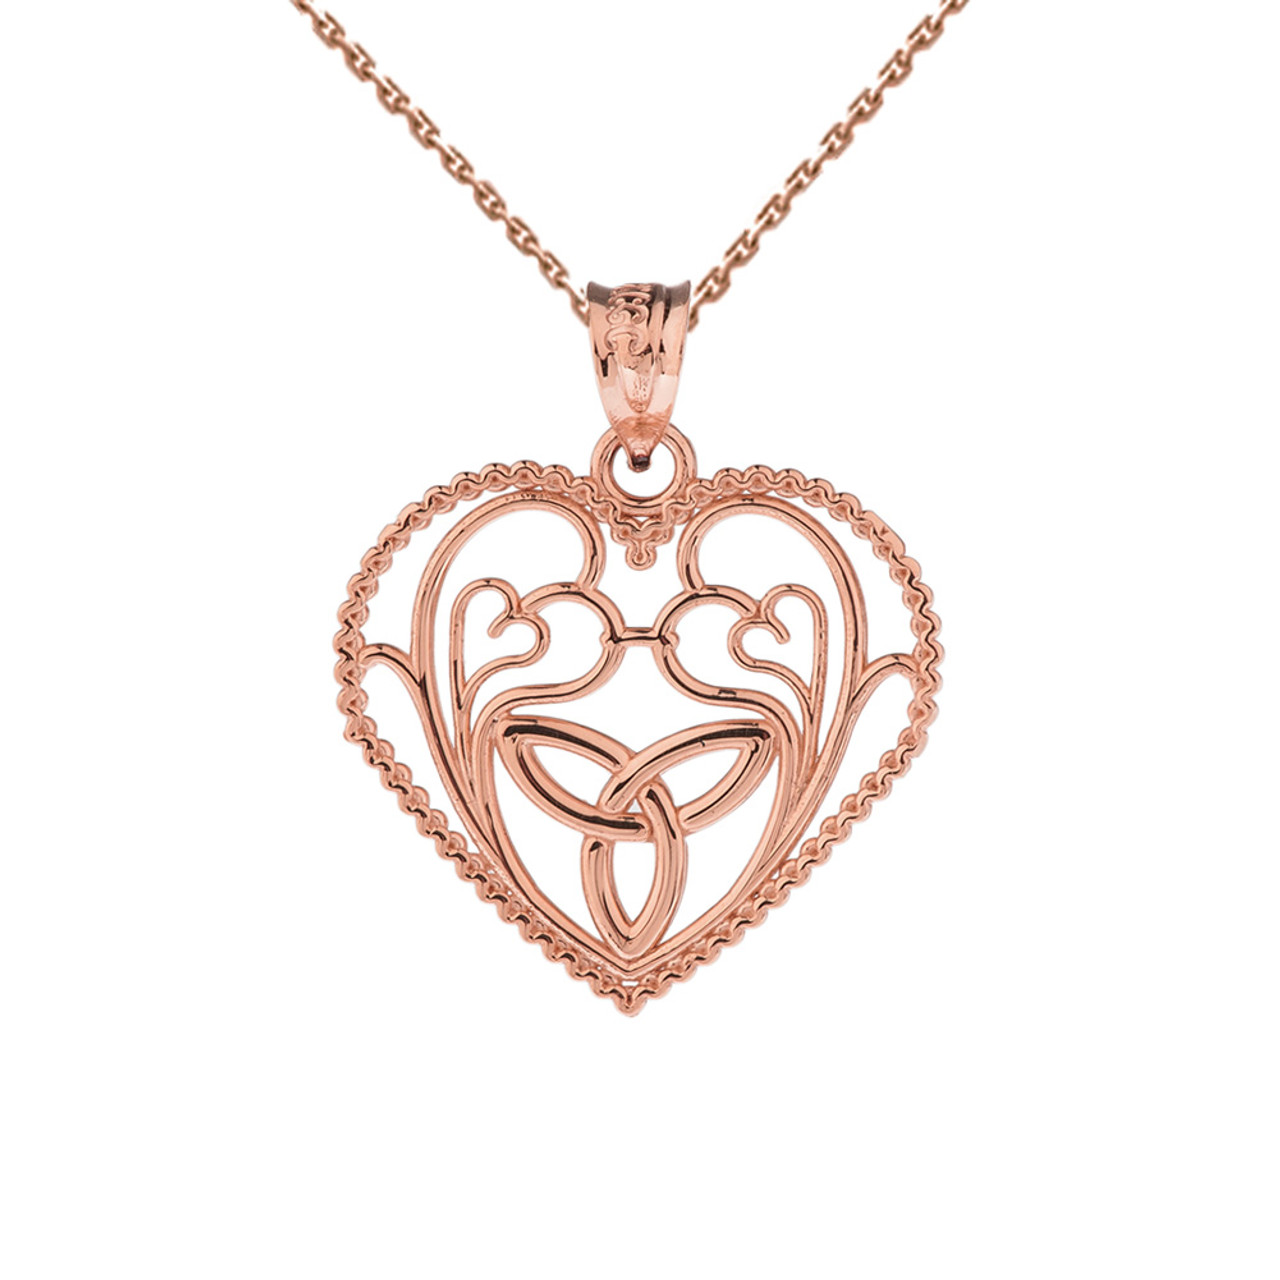 Rose gold rope heart pendant with trinity knot and filigree hearts rose gold rope heart pendant with trinity knot and filigree hearts design aloadofball Gallery